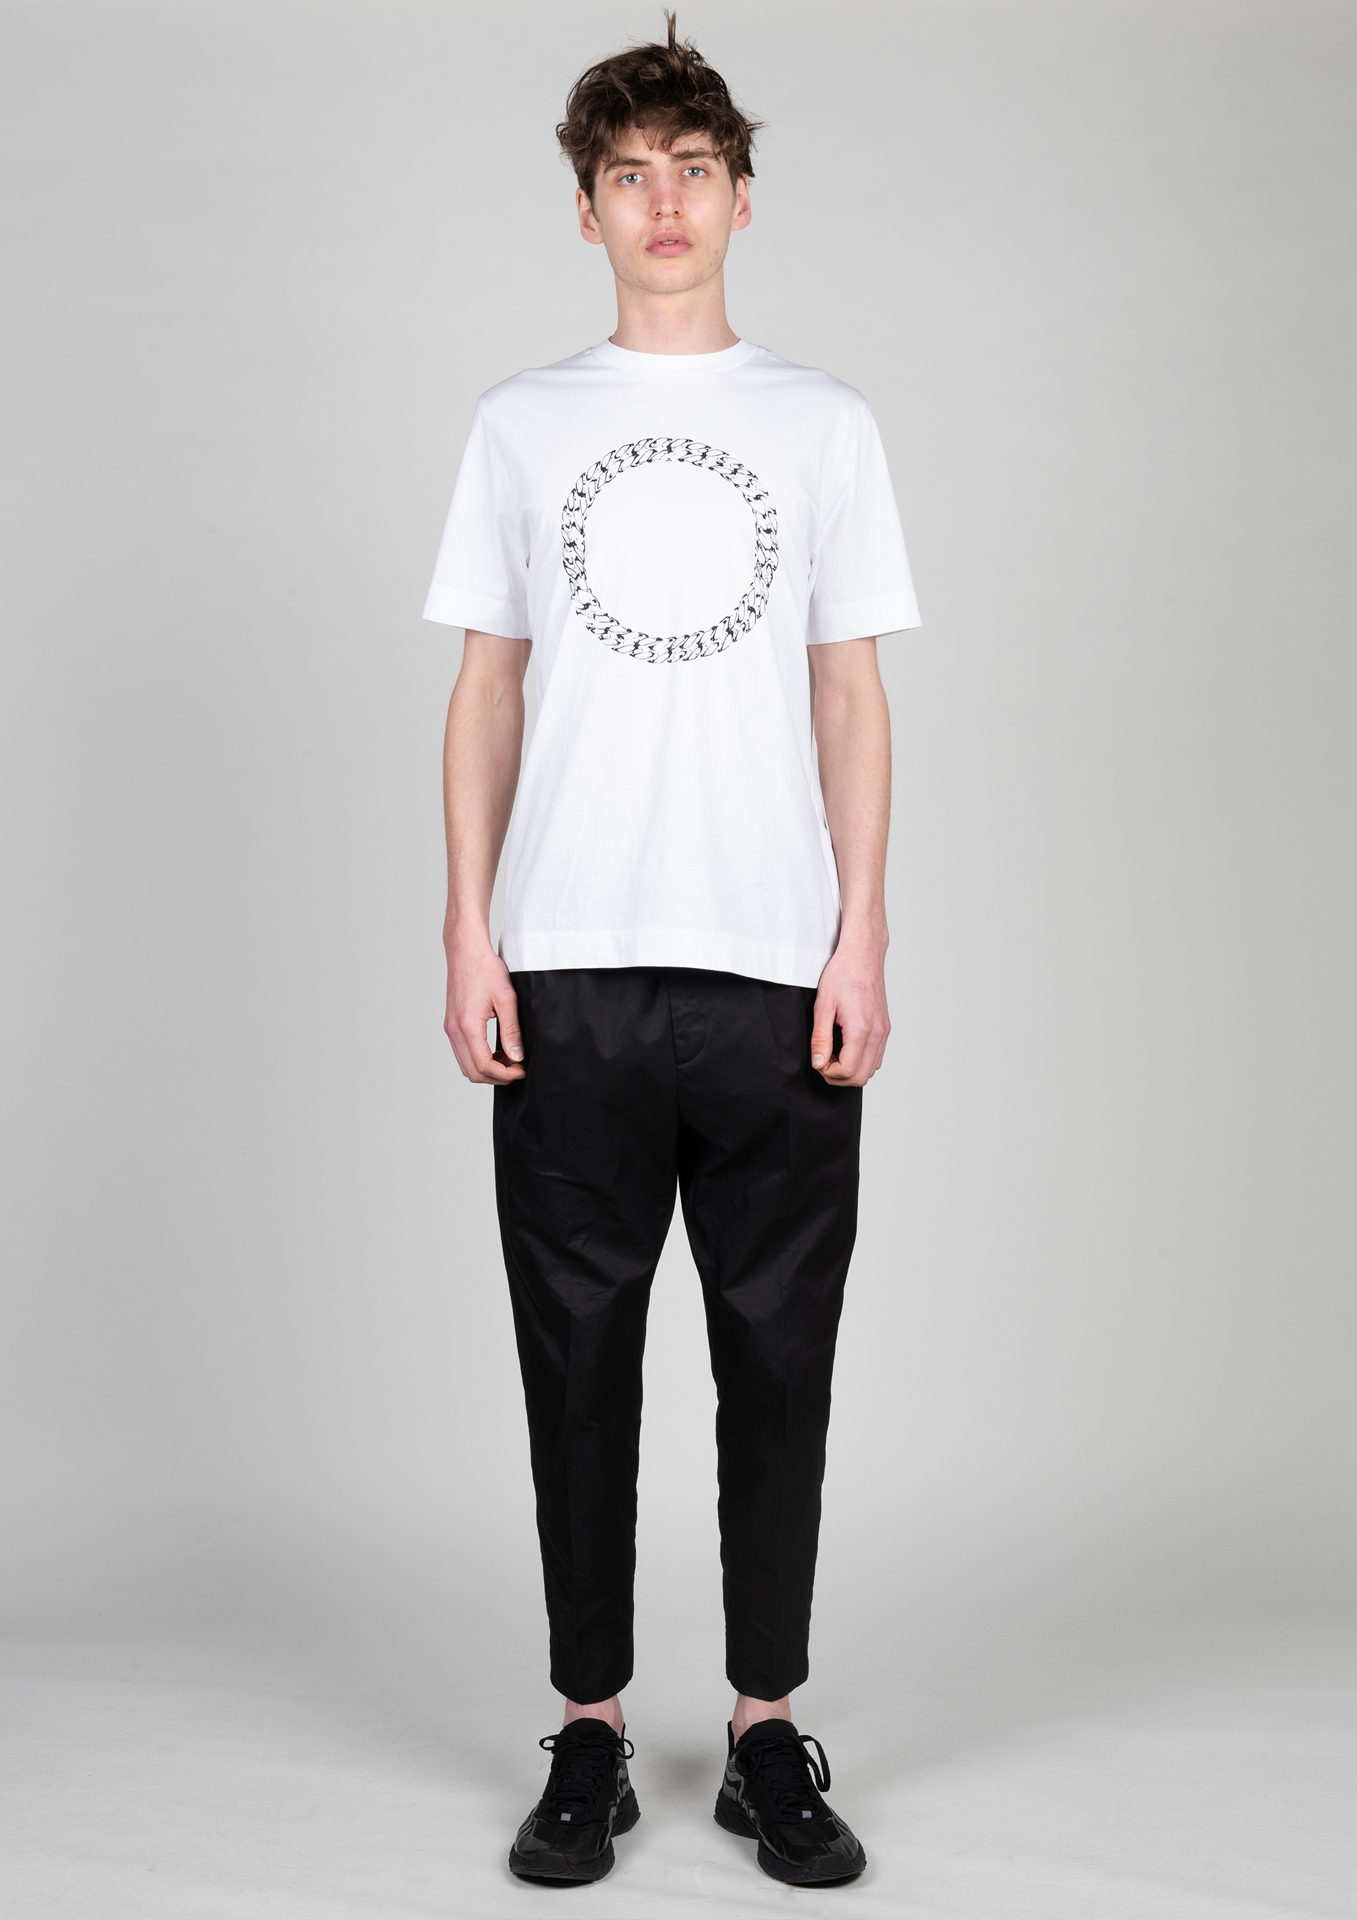 H T-Shirt AAMTS0222 Größe: L Farbe: white